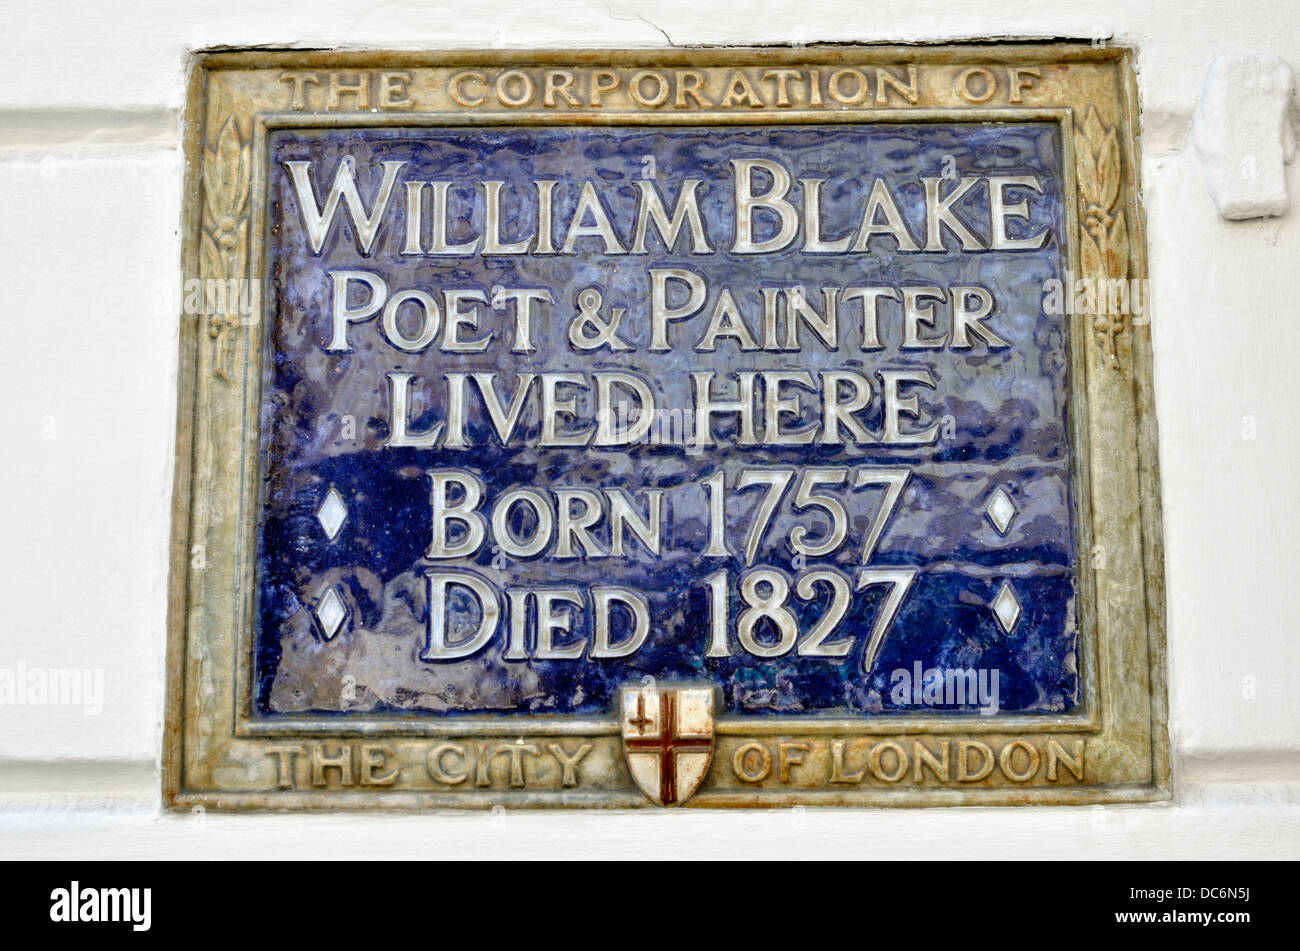 William Blake memorial plaque outside his former home in South Molton Street, Mayfair, London, UK. - Stock Image